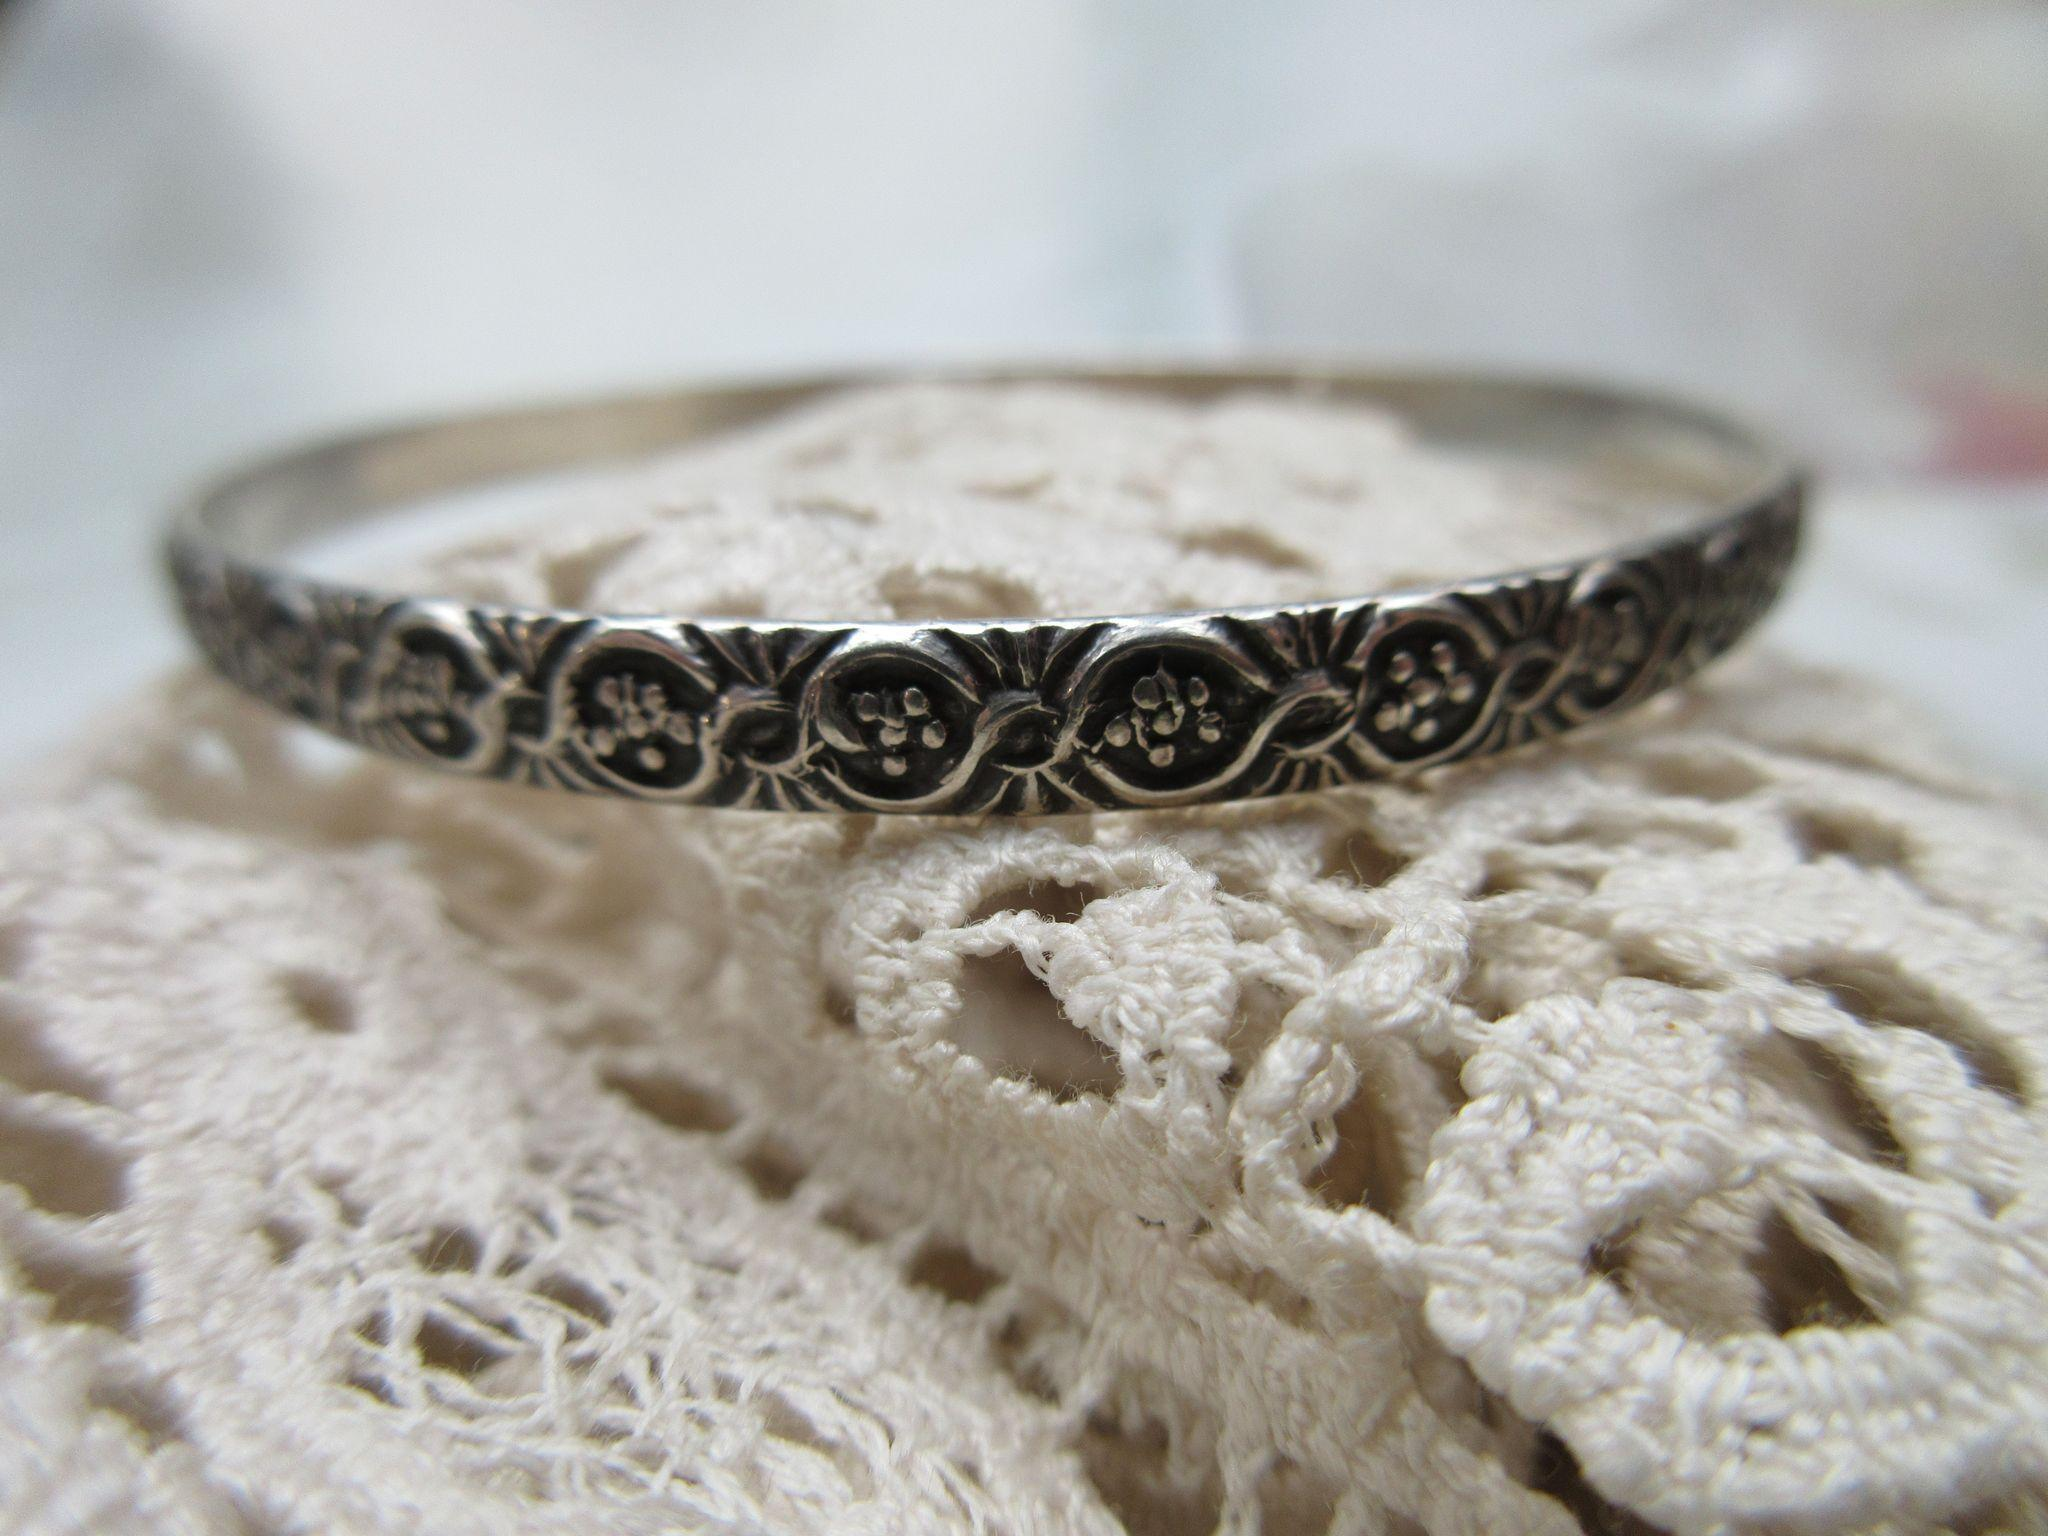 Circa 1930 Vintage Danecraft Felch Co Sterling Bangle Bracelet